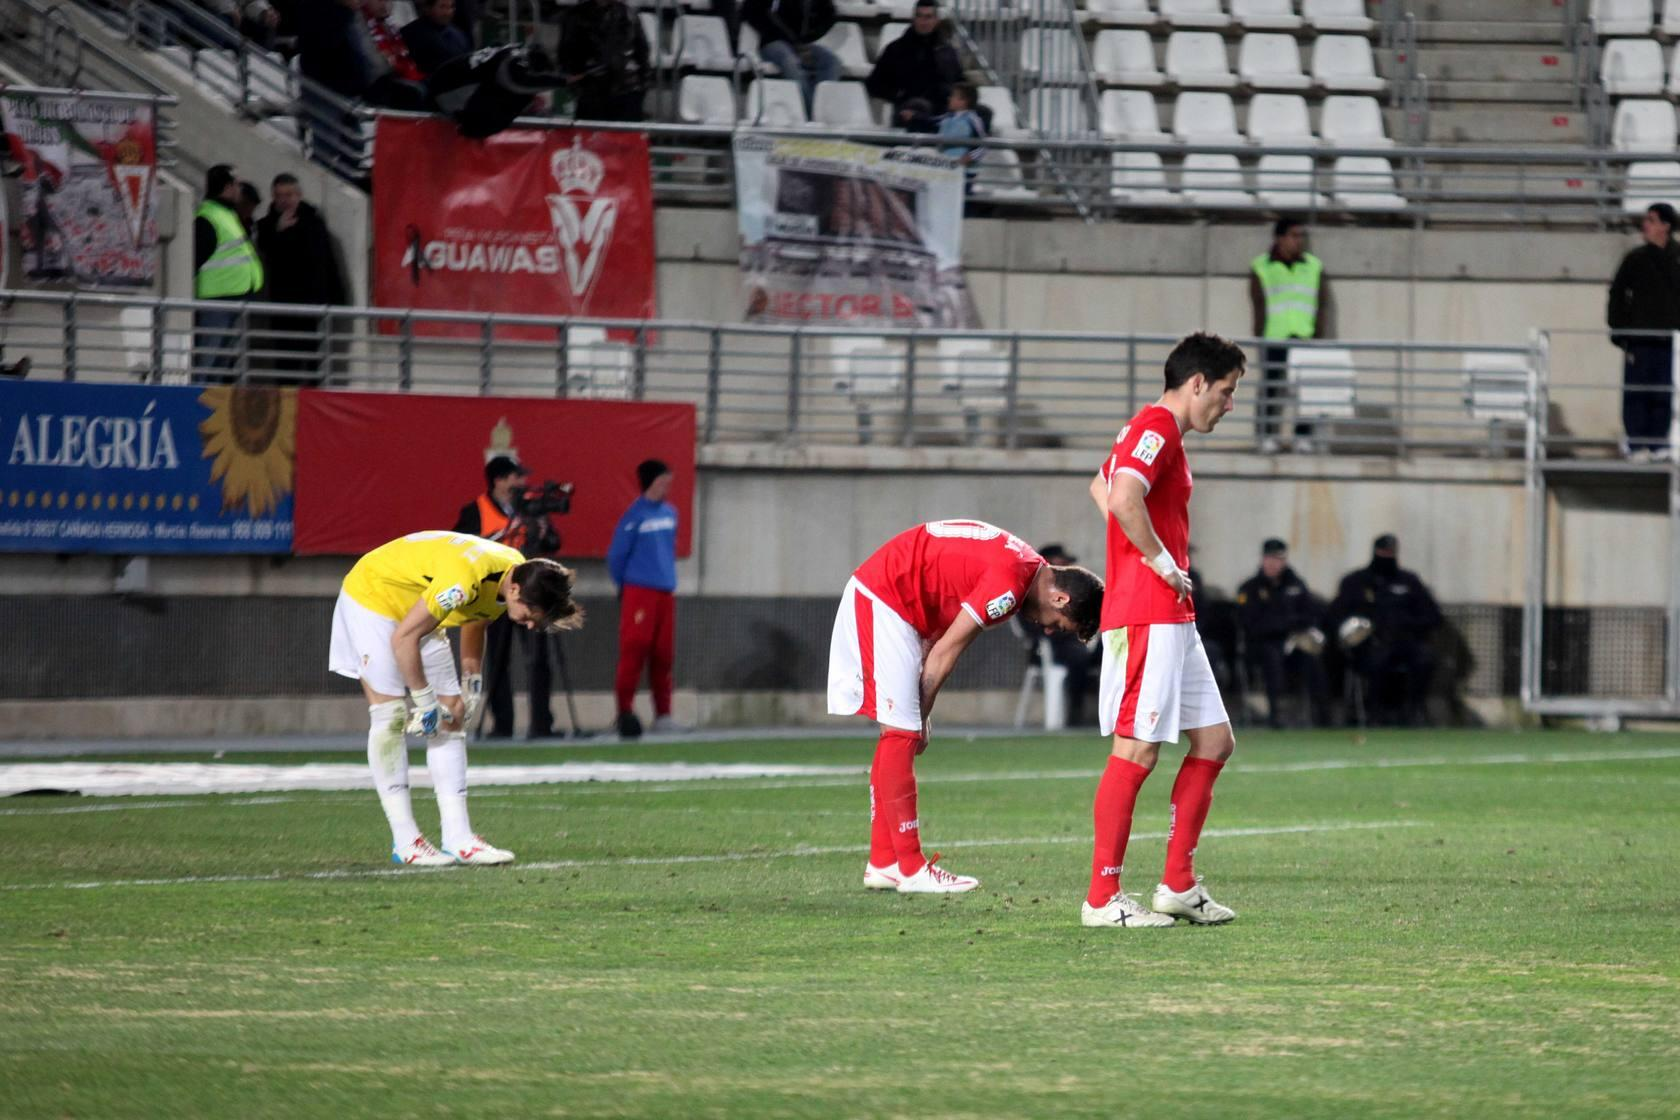 Real Murcia-Recreativo (1-2)